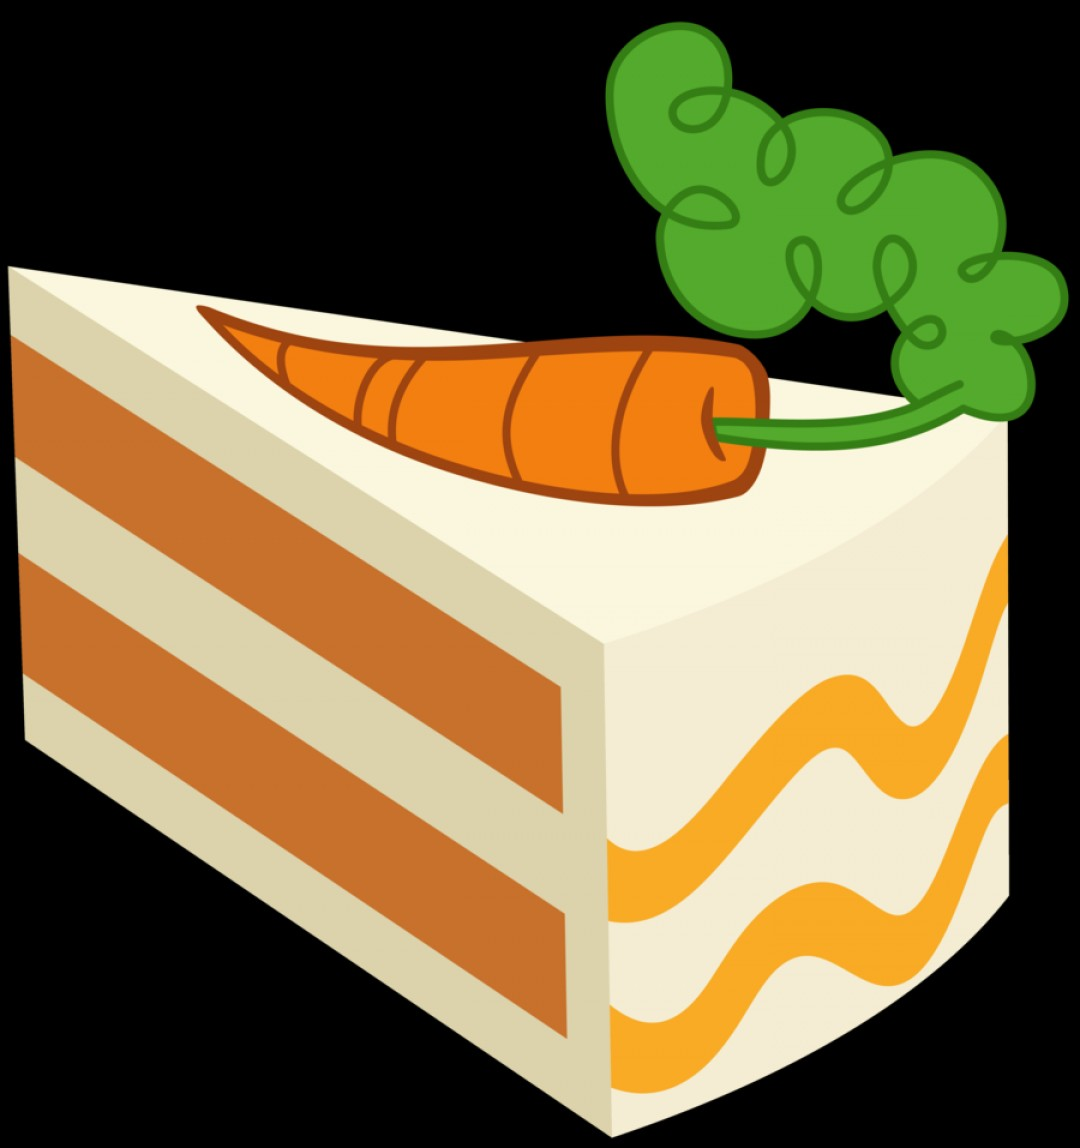 MLP Cake Vector: Karrot Kake S Cutie Mark Request